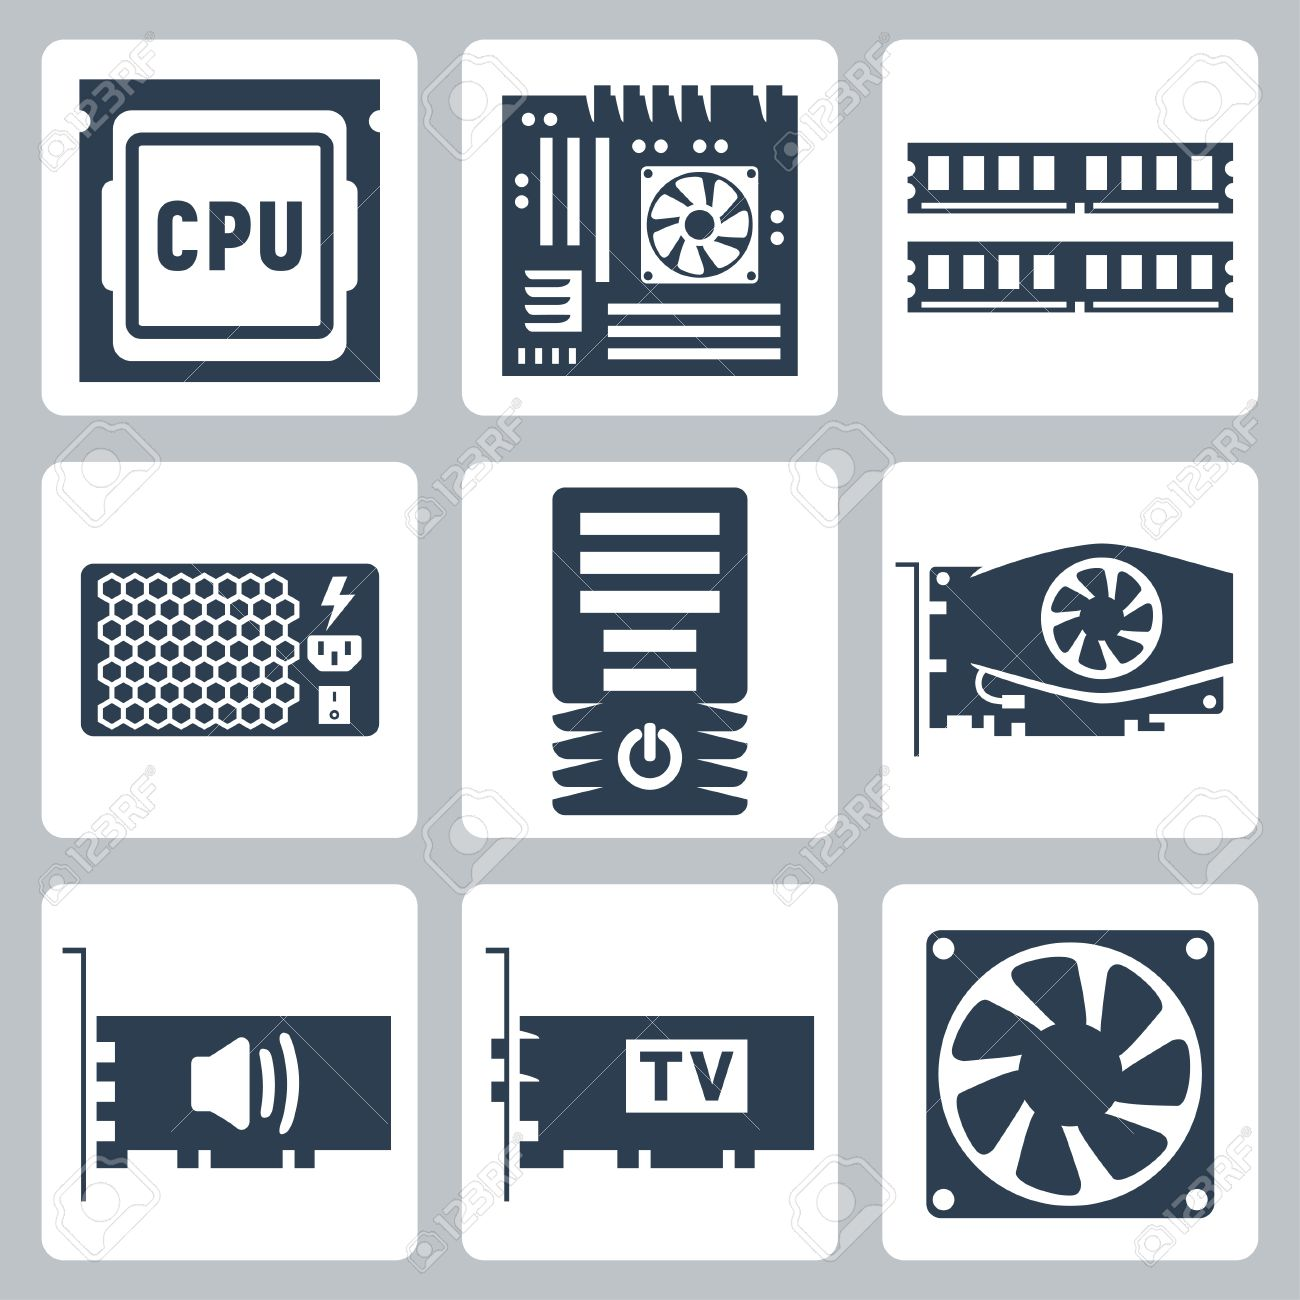 vector hardware icons set cpu motherboard ram power unit royalty free cliparts vectors and stock illustration image 23520717 vector hardware icons set cpu motherboard ram power unit